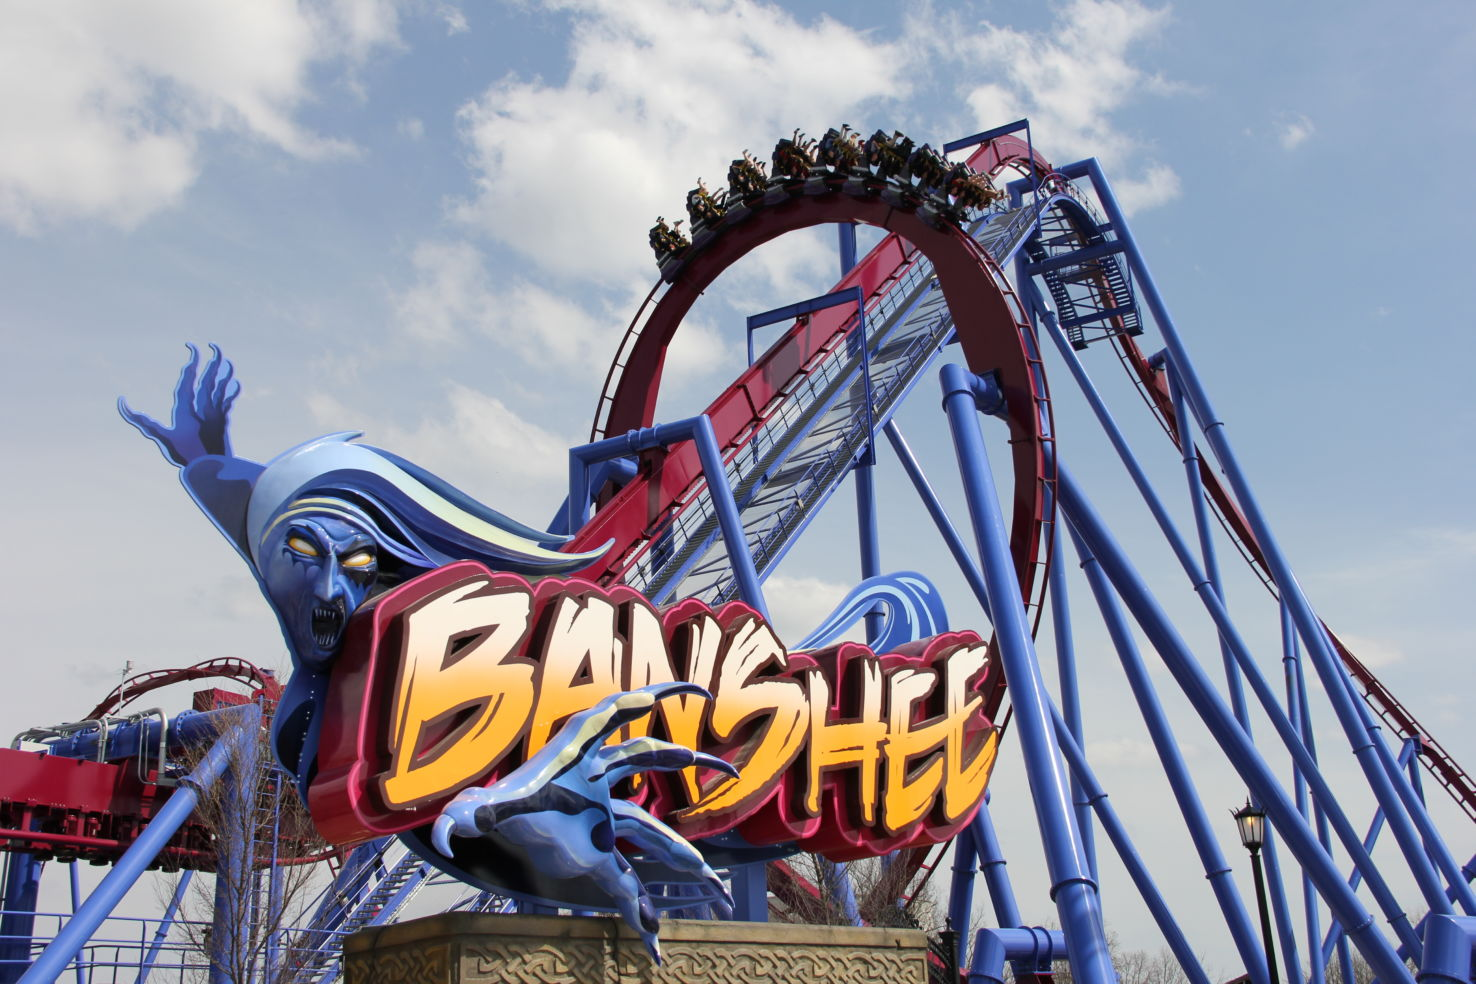 Banshee at Kings Island in Ohio